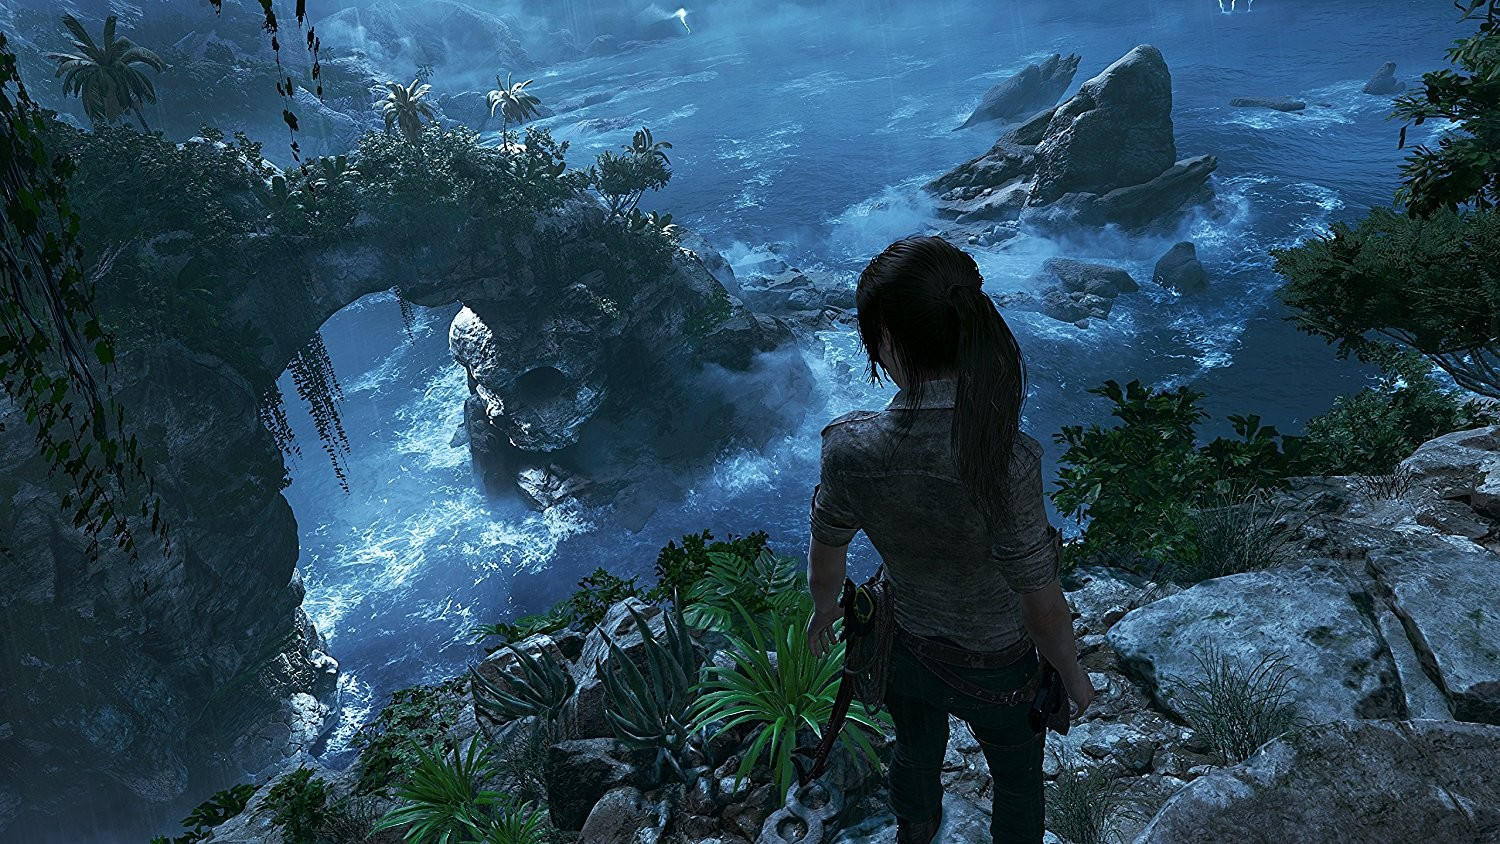 Foto de Capturas y carátula de Shadow of the Tomb Raider (26/04/2018) (8/12)